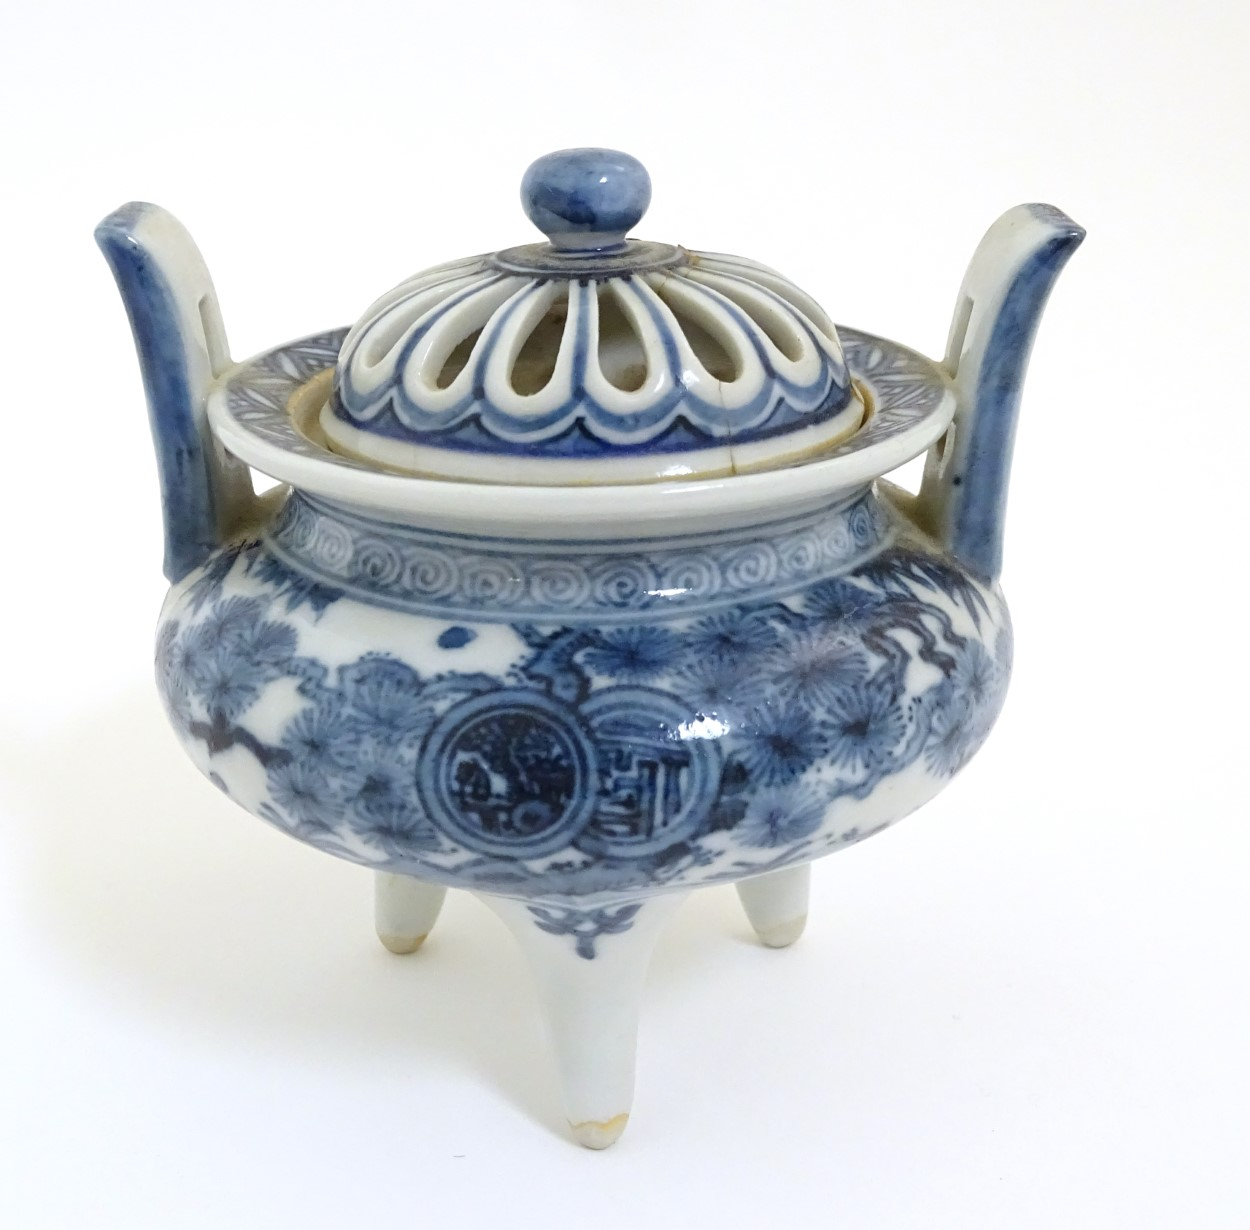 Lot 24 - A Chinese blue and white three legged, two handled censer with pierced cover,